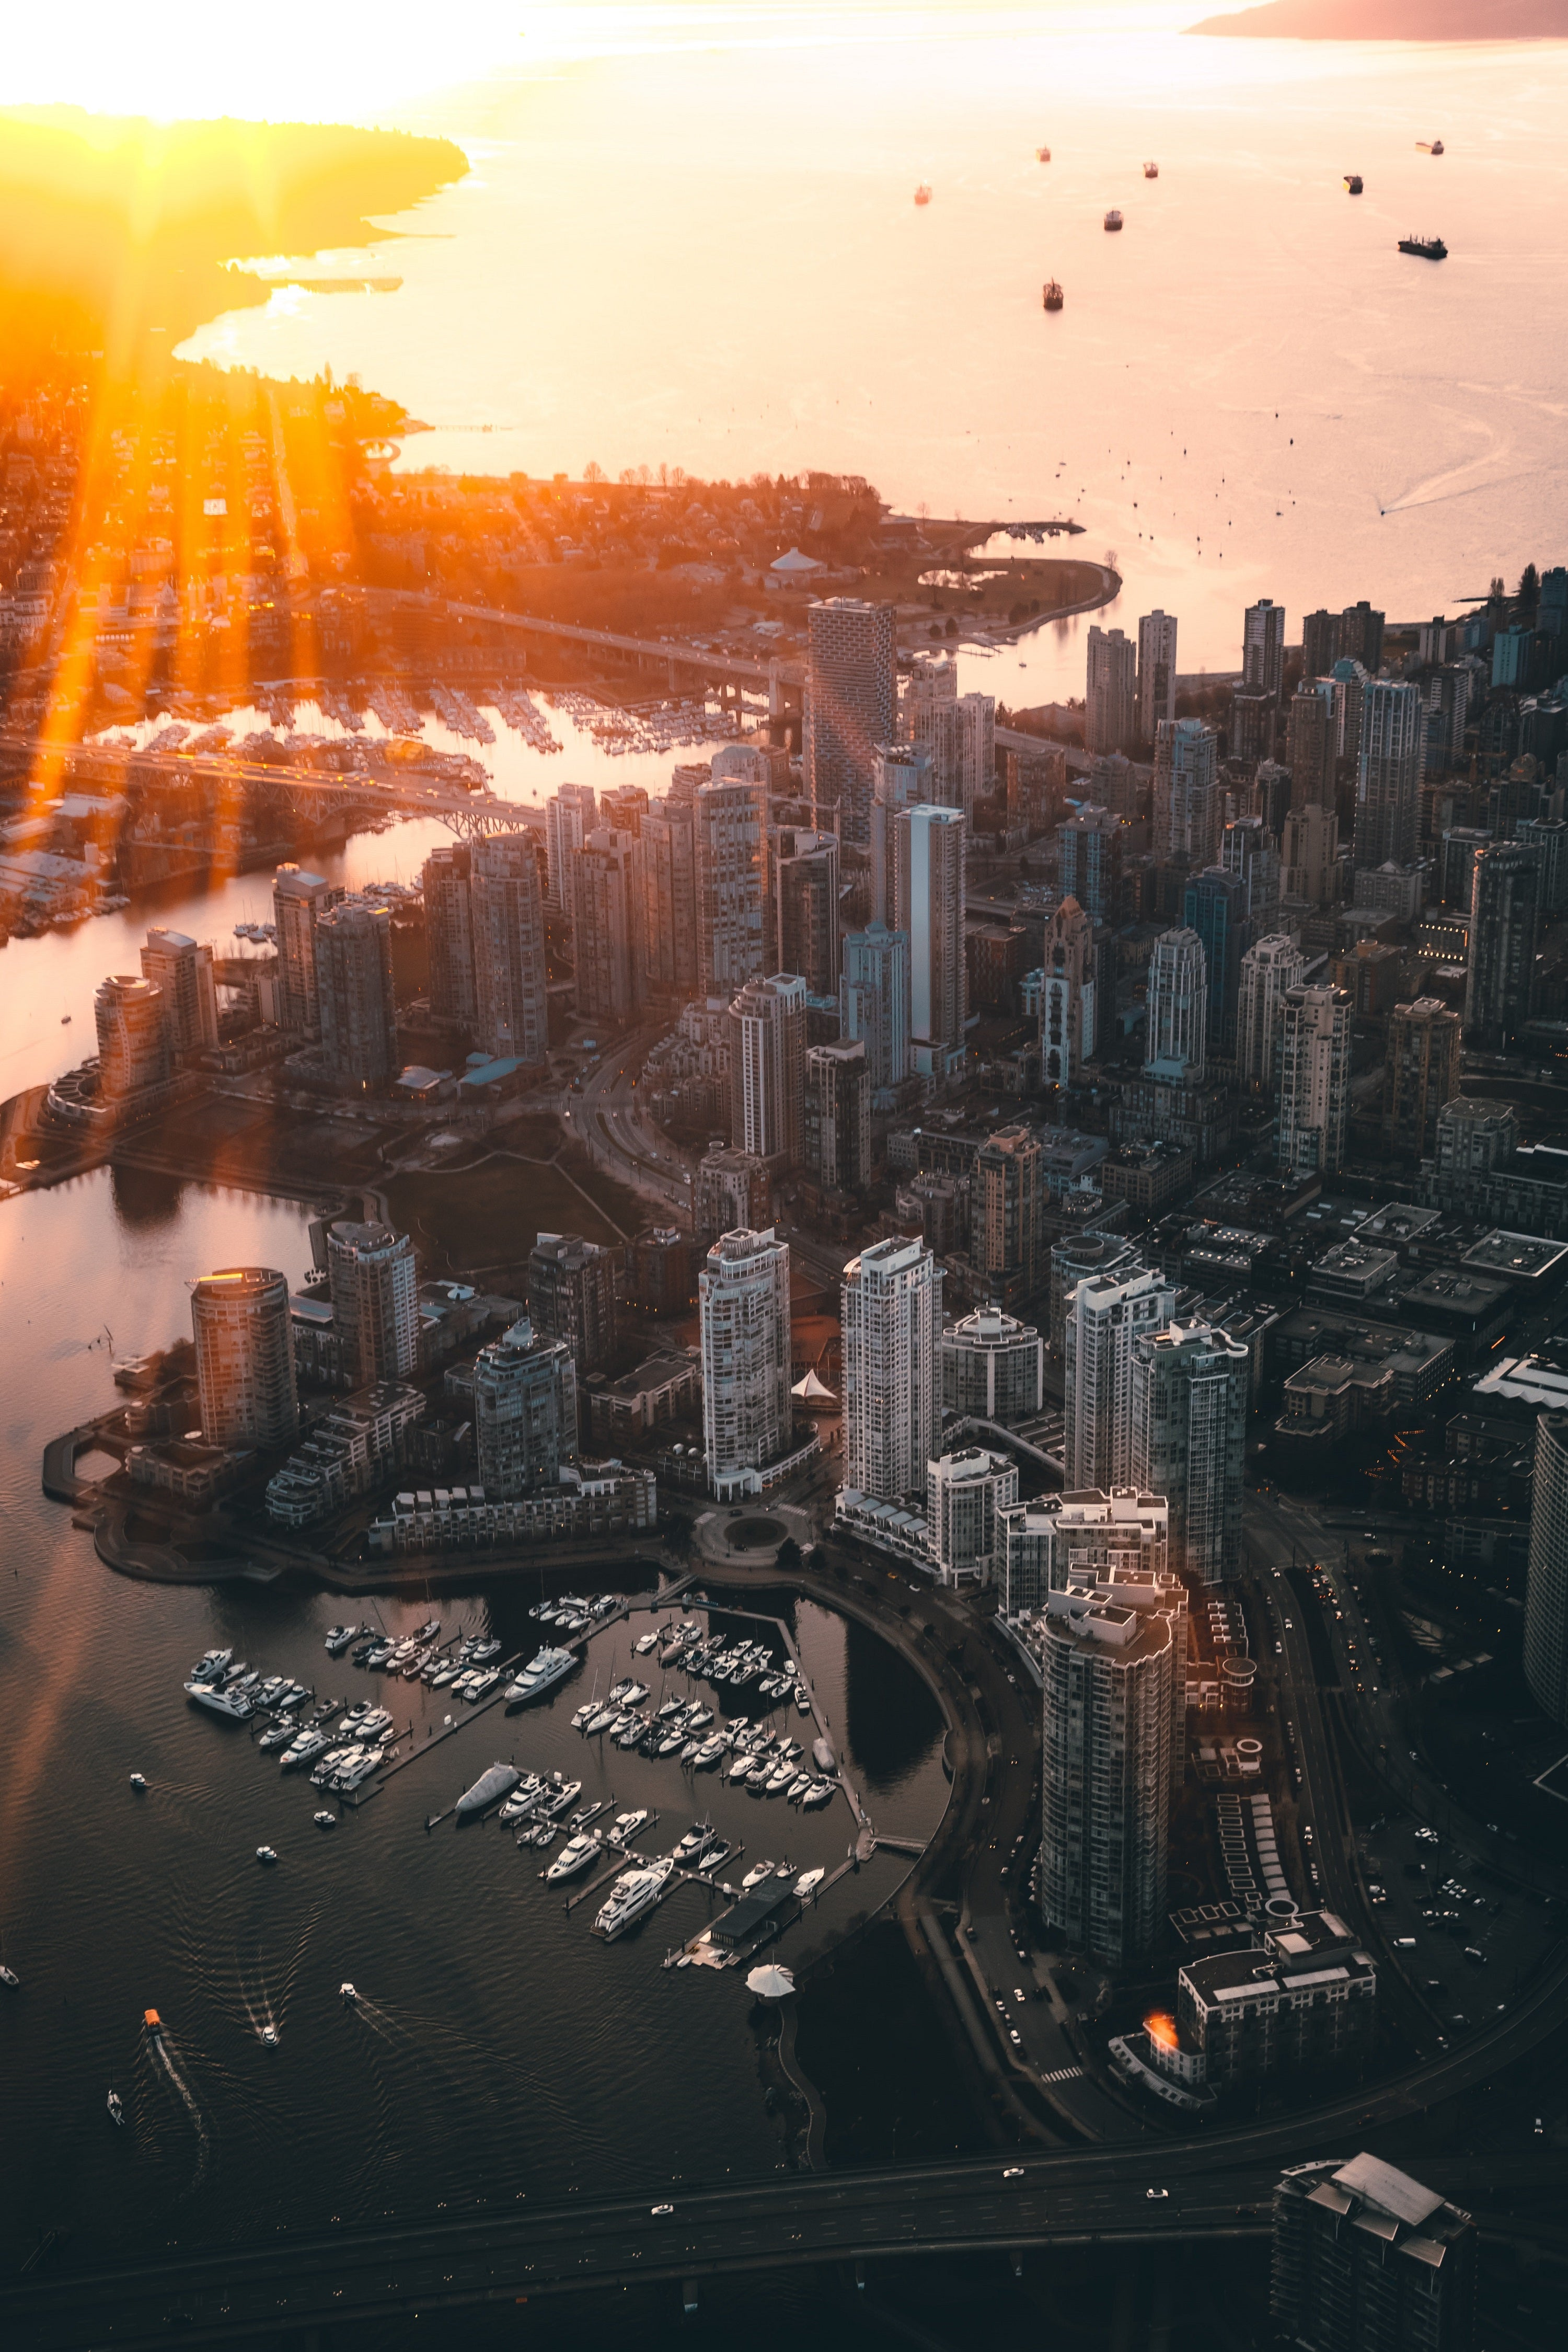 Landscape of Vancouver during sunset.